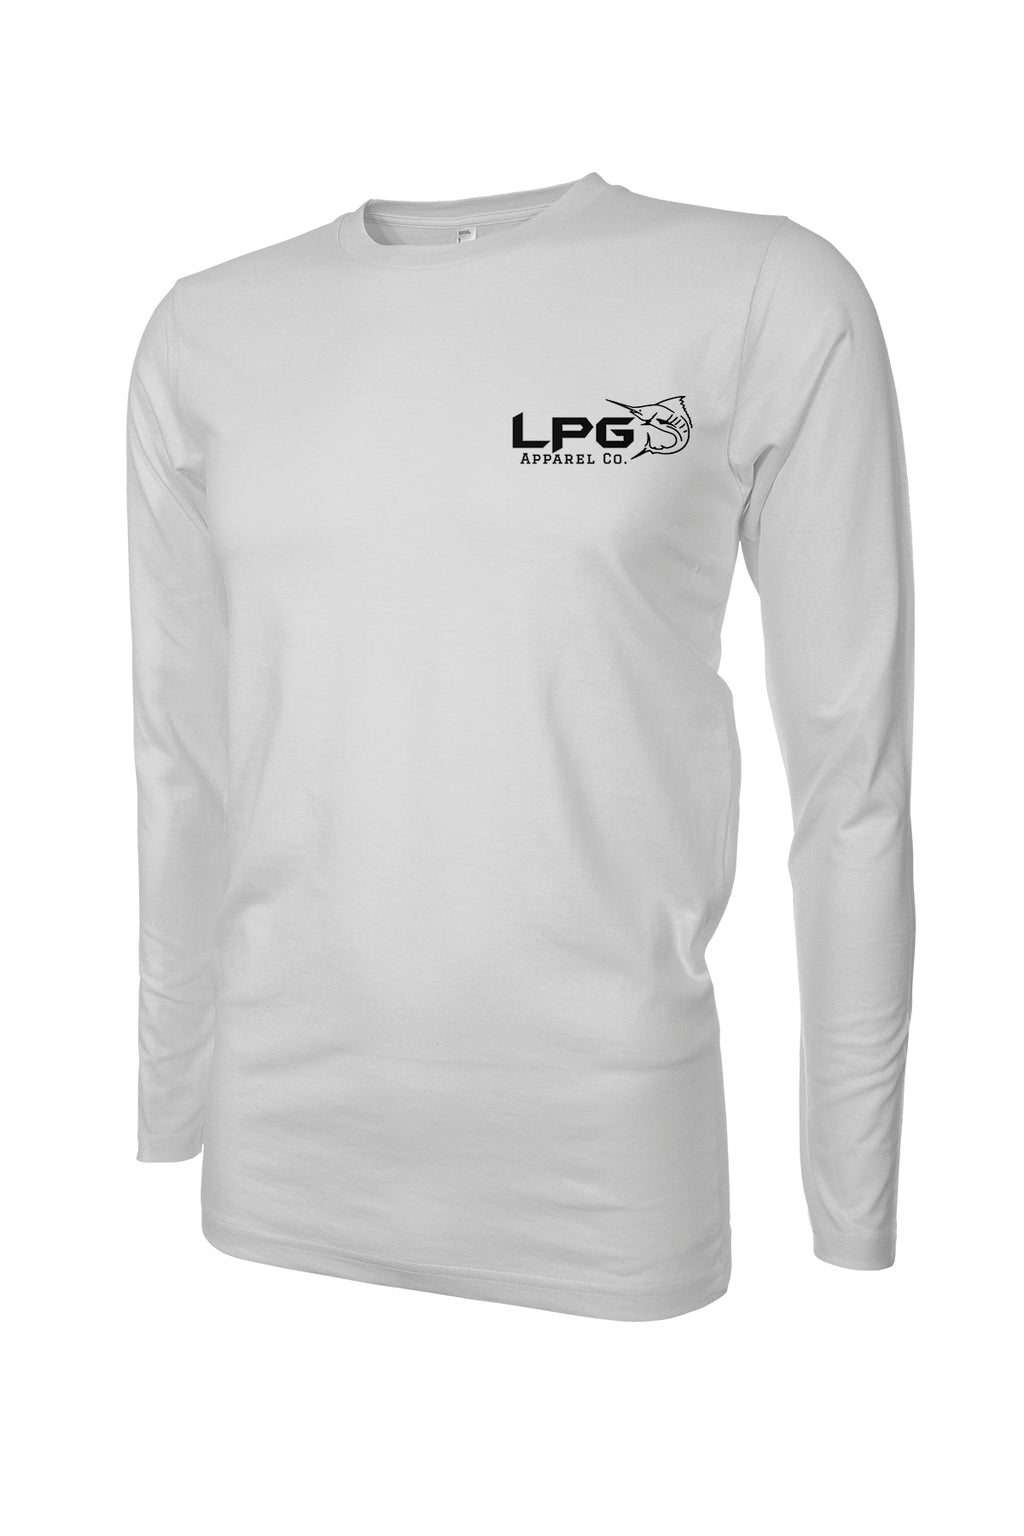 lobo-sportfishing - LPG Apparel Co. Mahi Tuna Marlin Mixed Bag Rash Guard LS Performance UPF 50 Unisex Shirt - Lobo Lures -